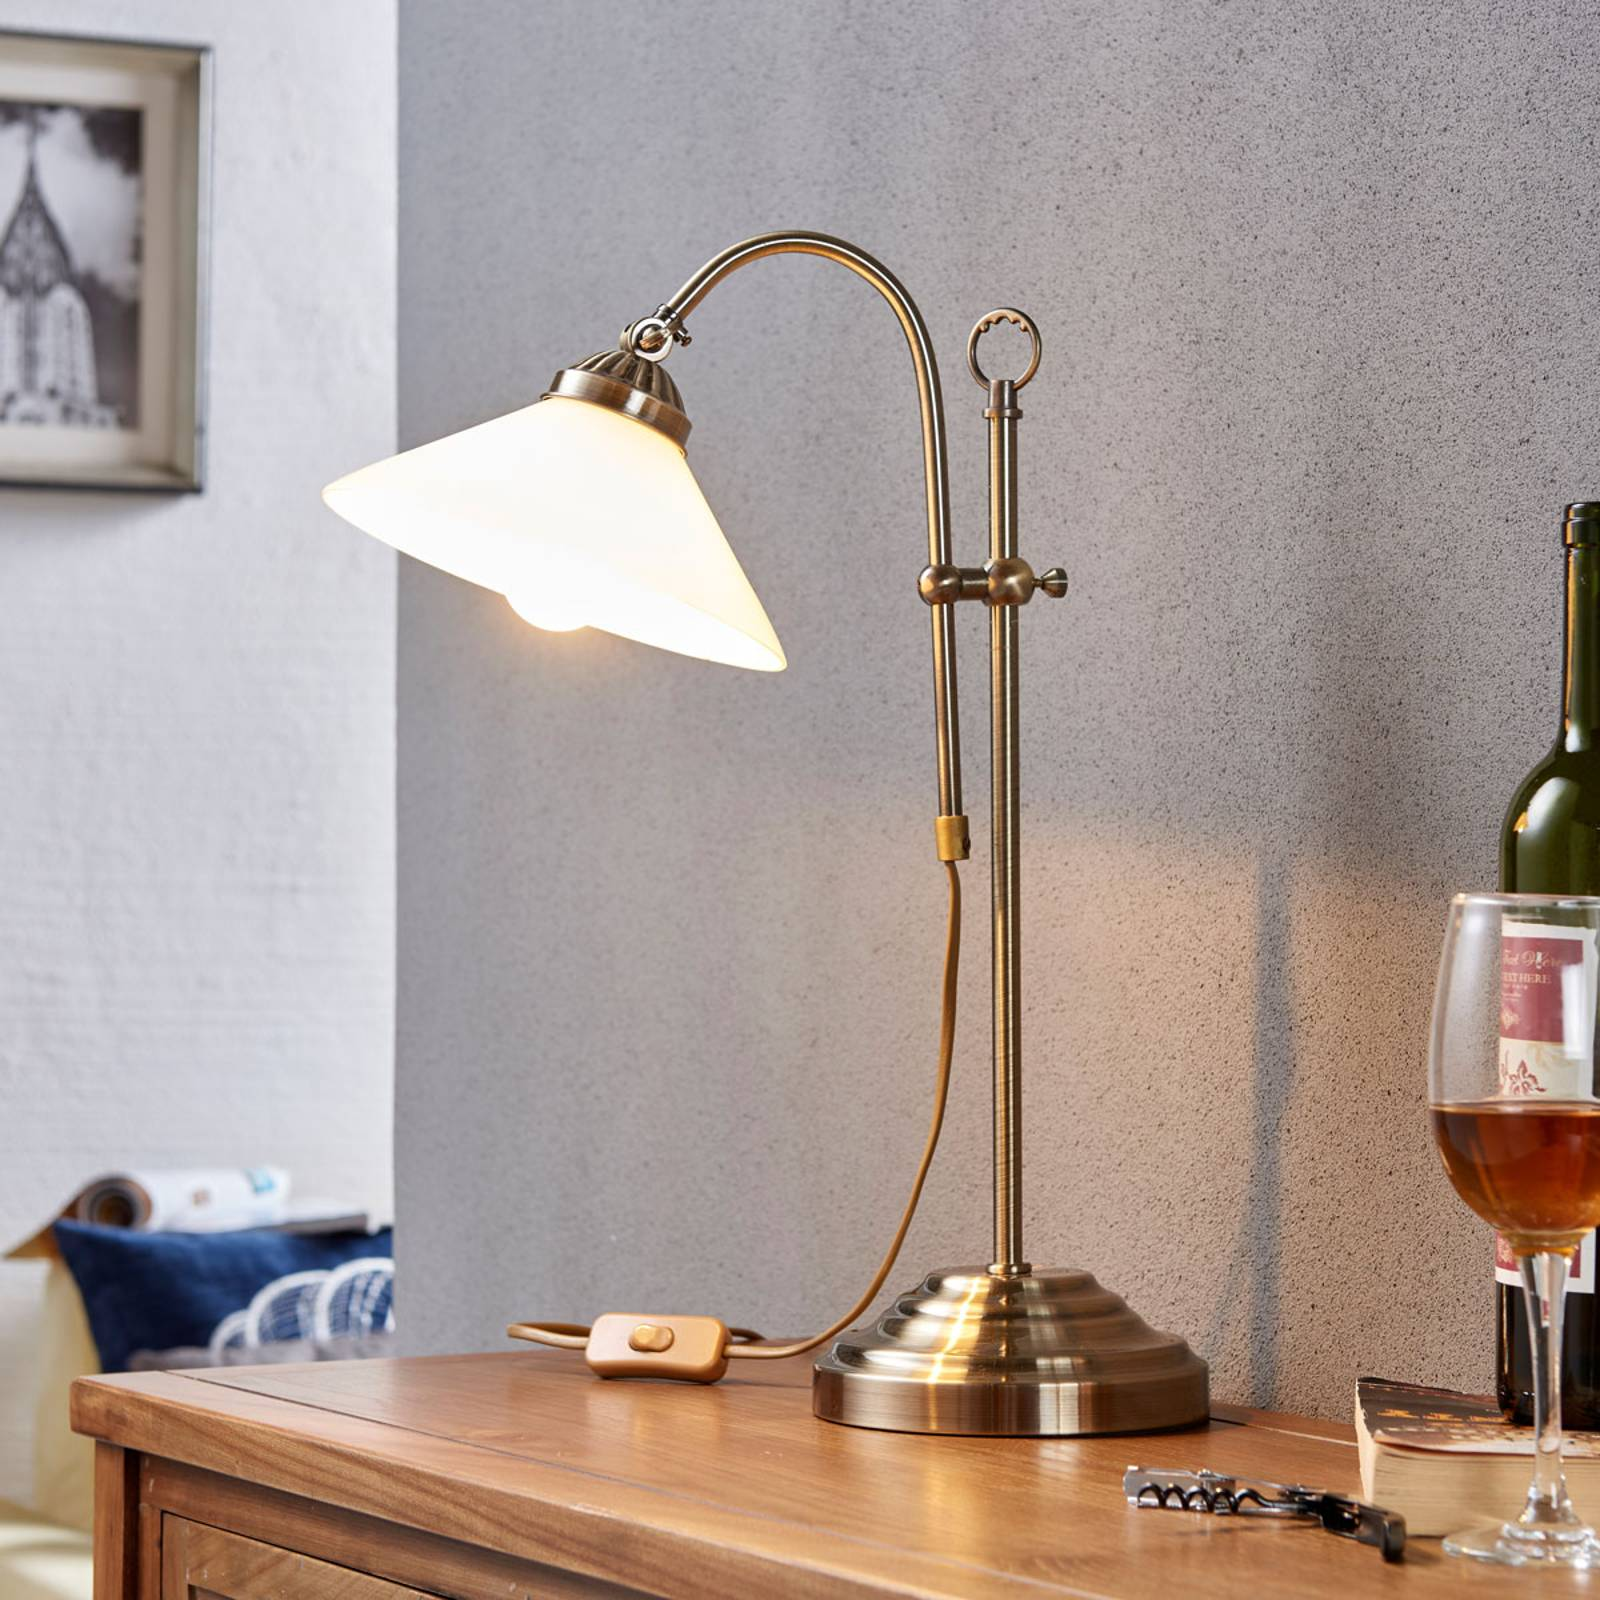 Classic table lamp Otis in antique brass from Lindby